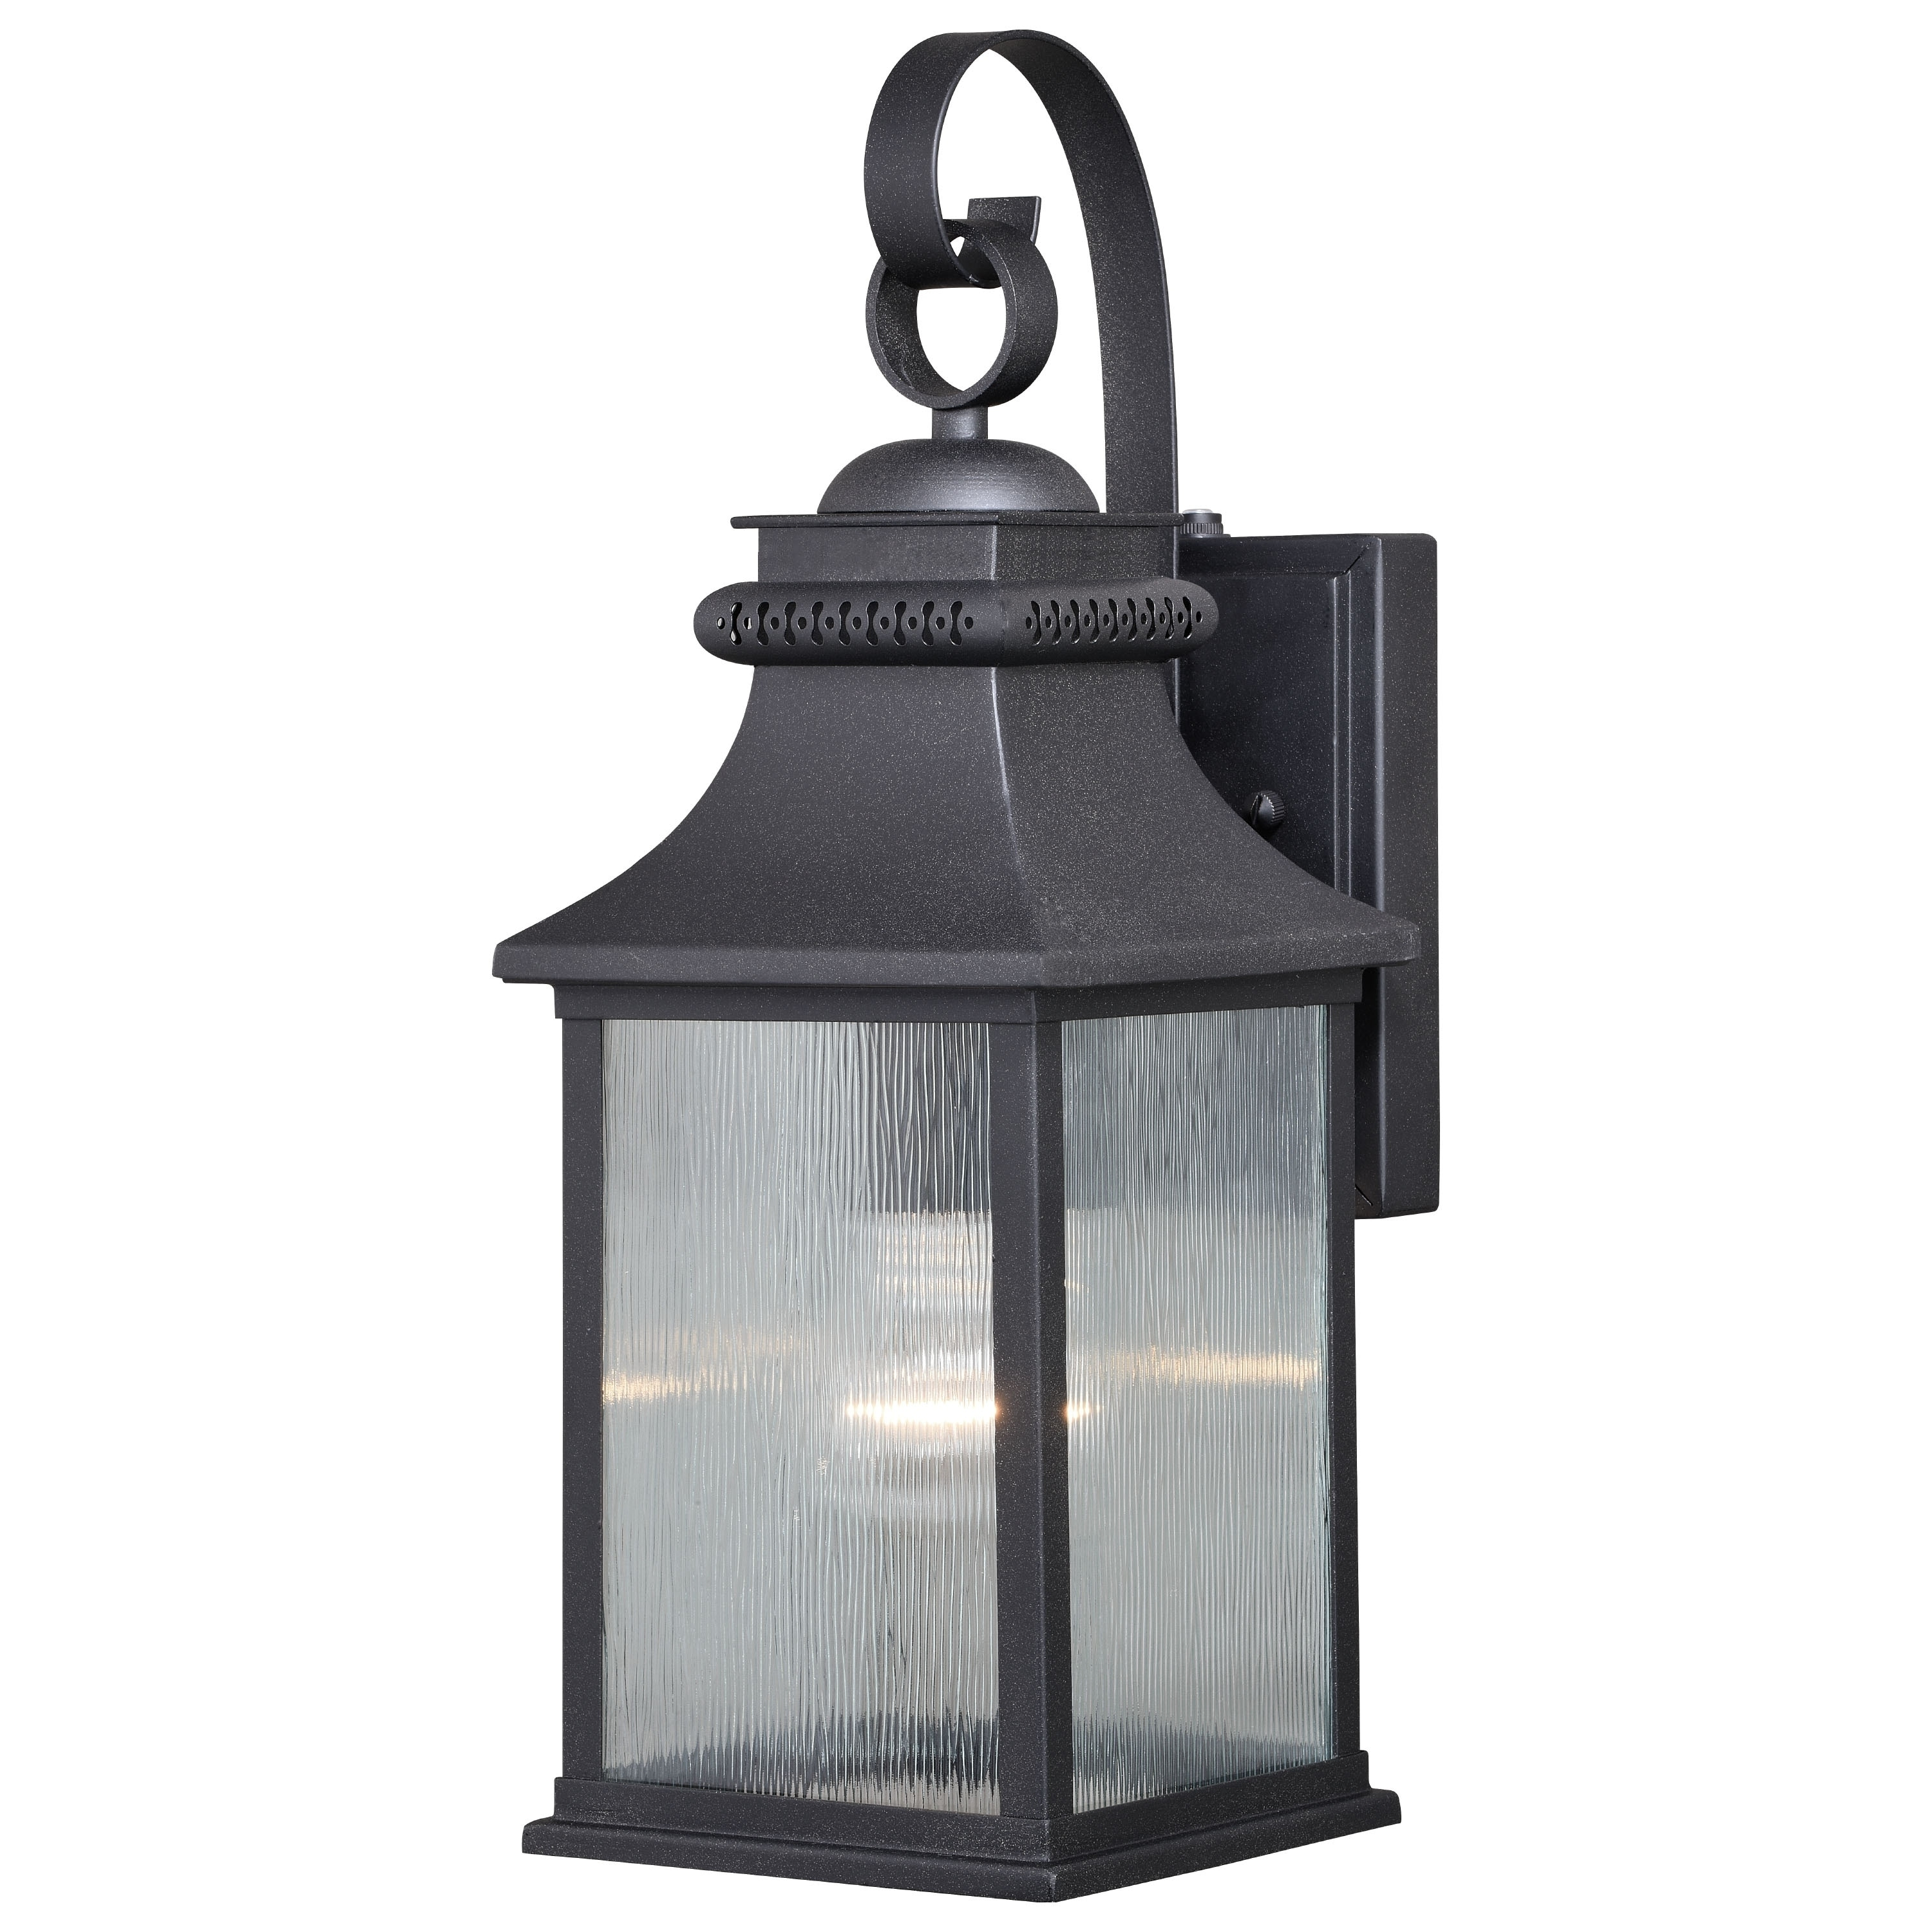 Cambridge 1 Light Dusk To Dawn Bronze Outdoor Wall Lantern Clear Glass 6 In W X 16 25 In H X 7 25 In D Overstock 28377788